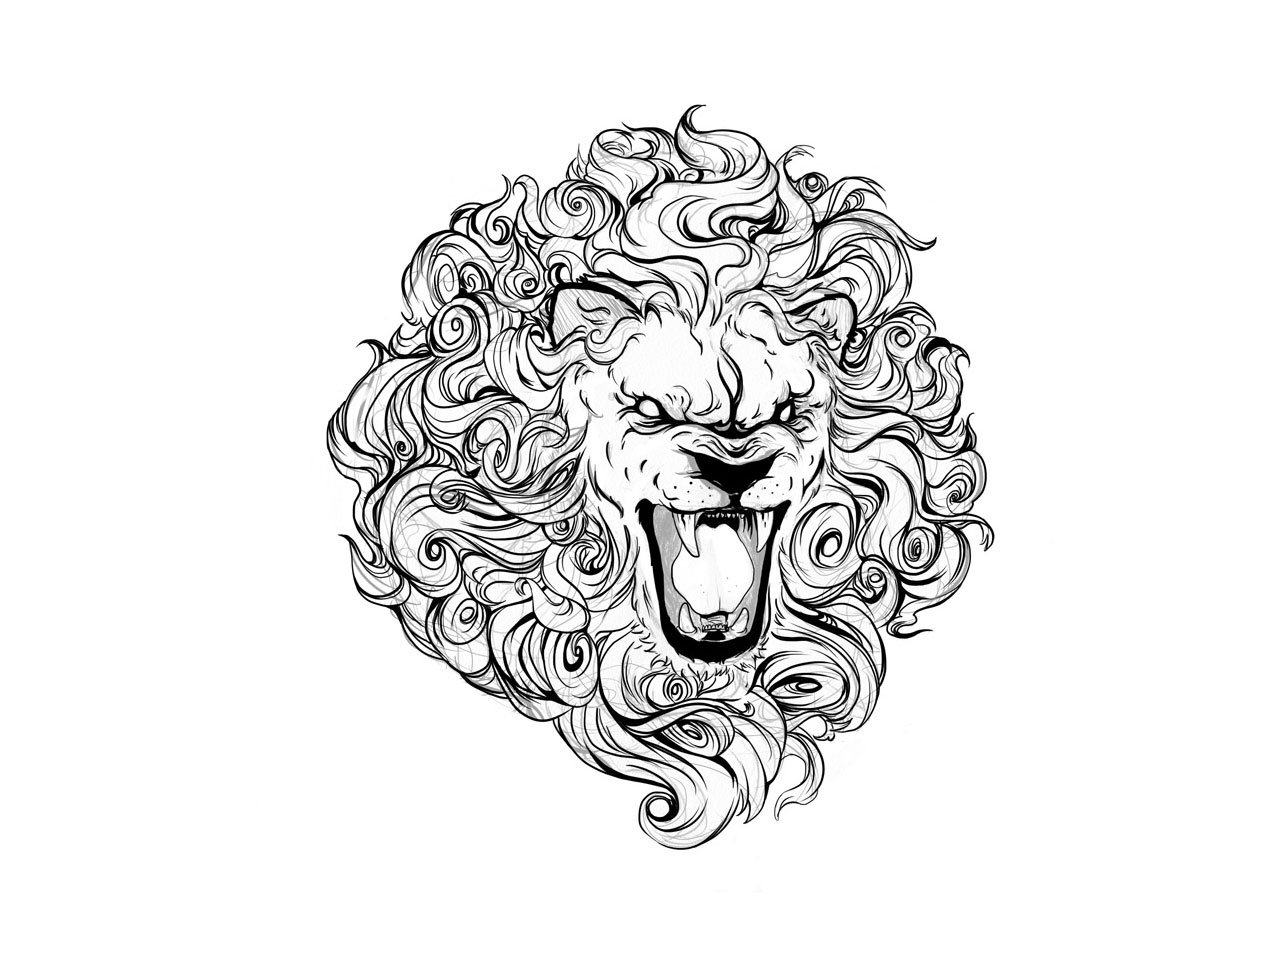 angry lion tattoo design in 2017 real photo pictures images and sketches tattoo collections. Black Bedroom Furniture Sets. Home Design Ideas